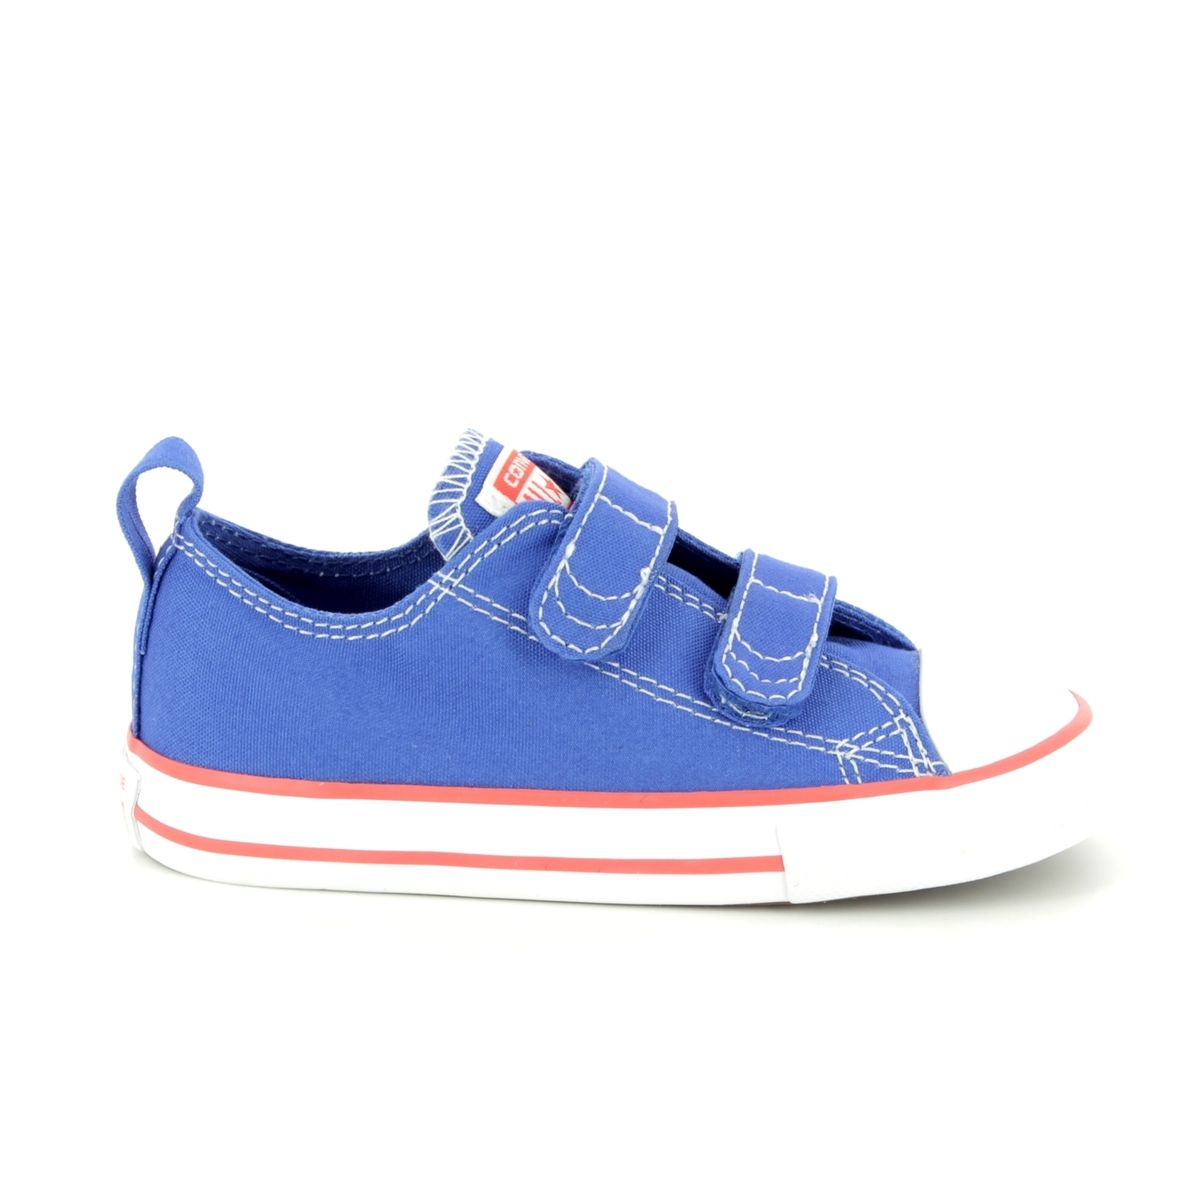 8c4907708593 Converse All Star Ox Velcro Infants 760050C Blue Kids trainers